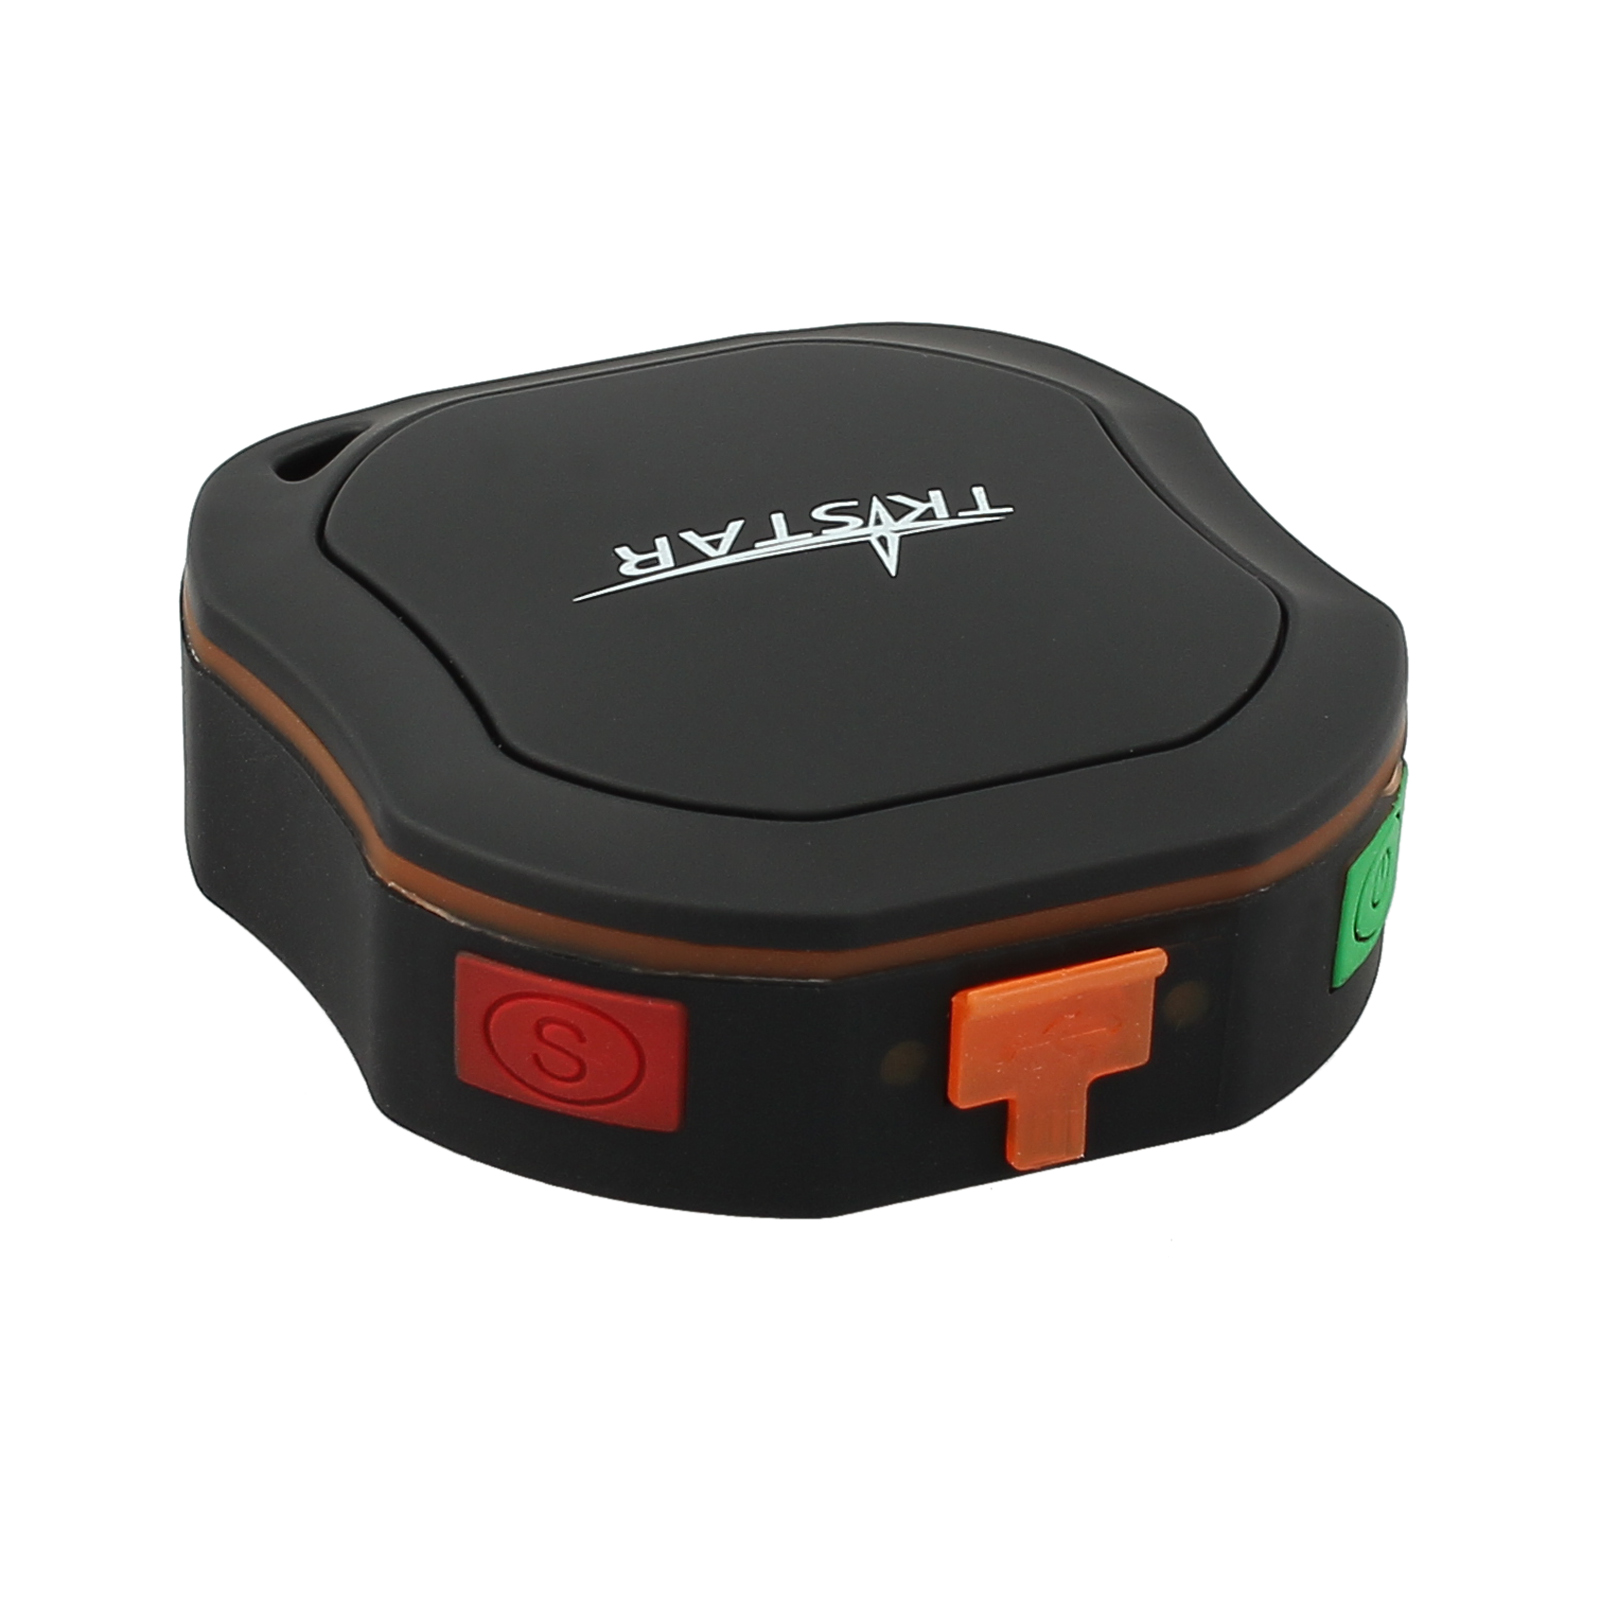 mini gprs gps tracker sms sender peilsender sos alarm. Black Bedroom Furniture Sets. Home Design Ideas